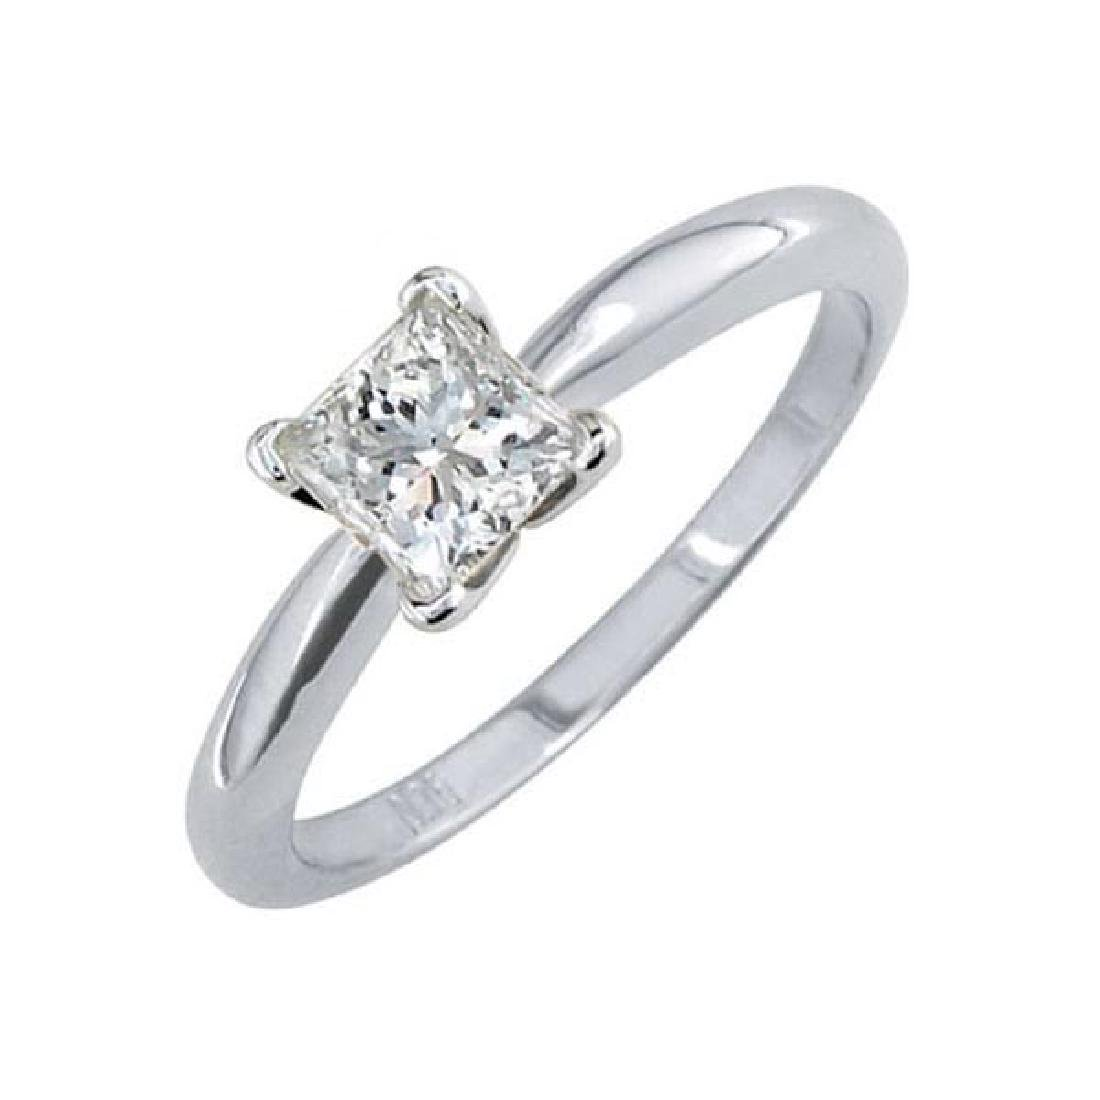 Certified 1.09 CTW Princess Diamond Solitaire 14k Ring